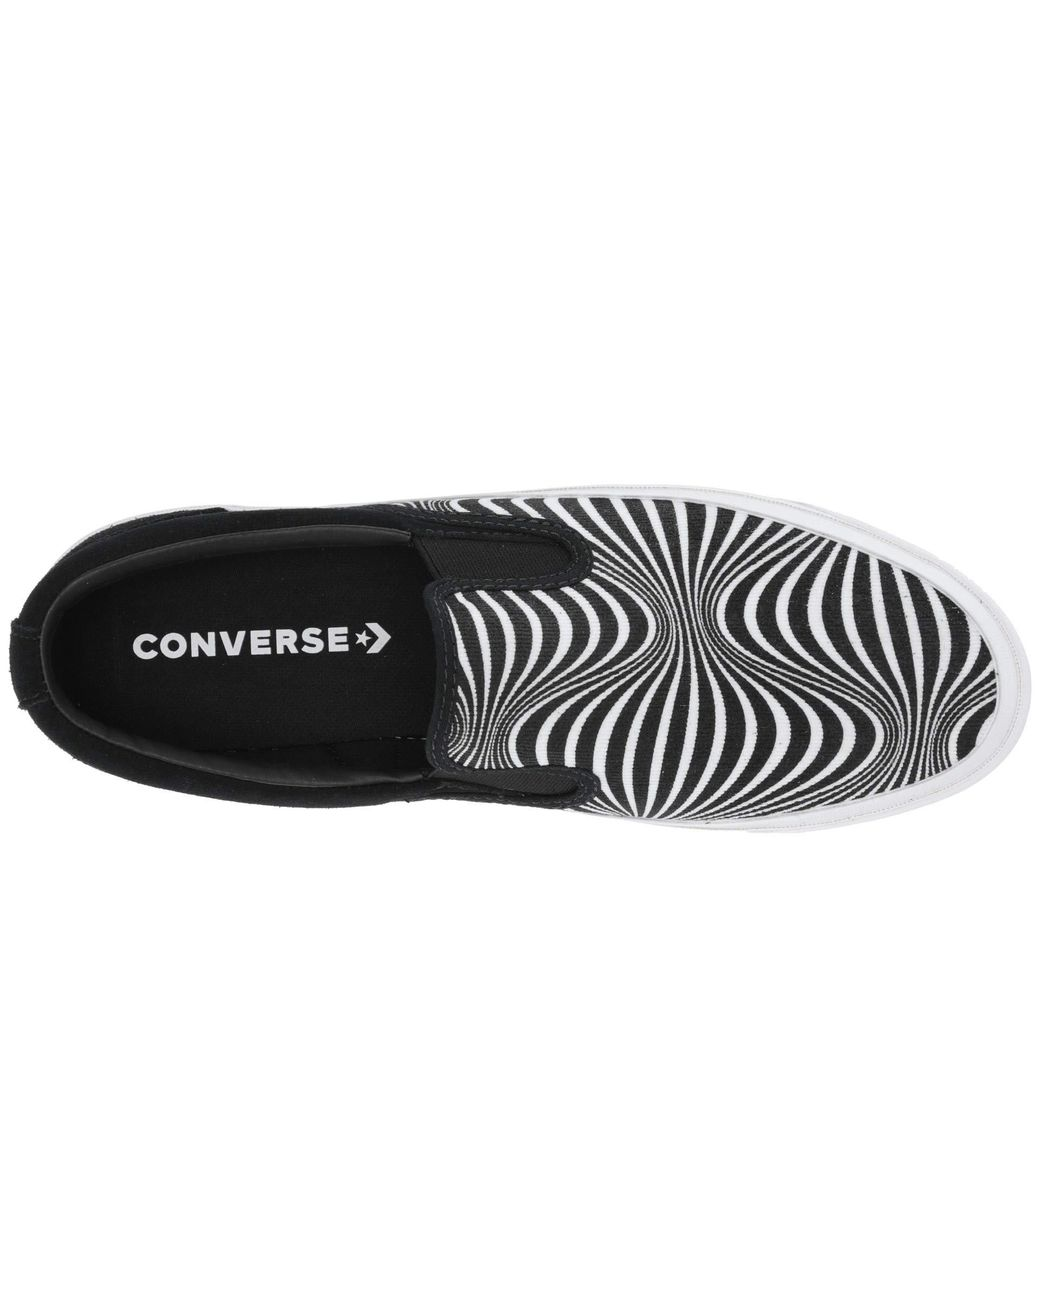 Converse Rubber One Star Cc Slip Moonshot Slip in Black Lyst